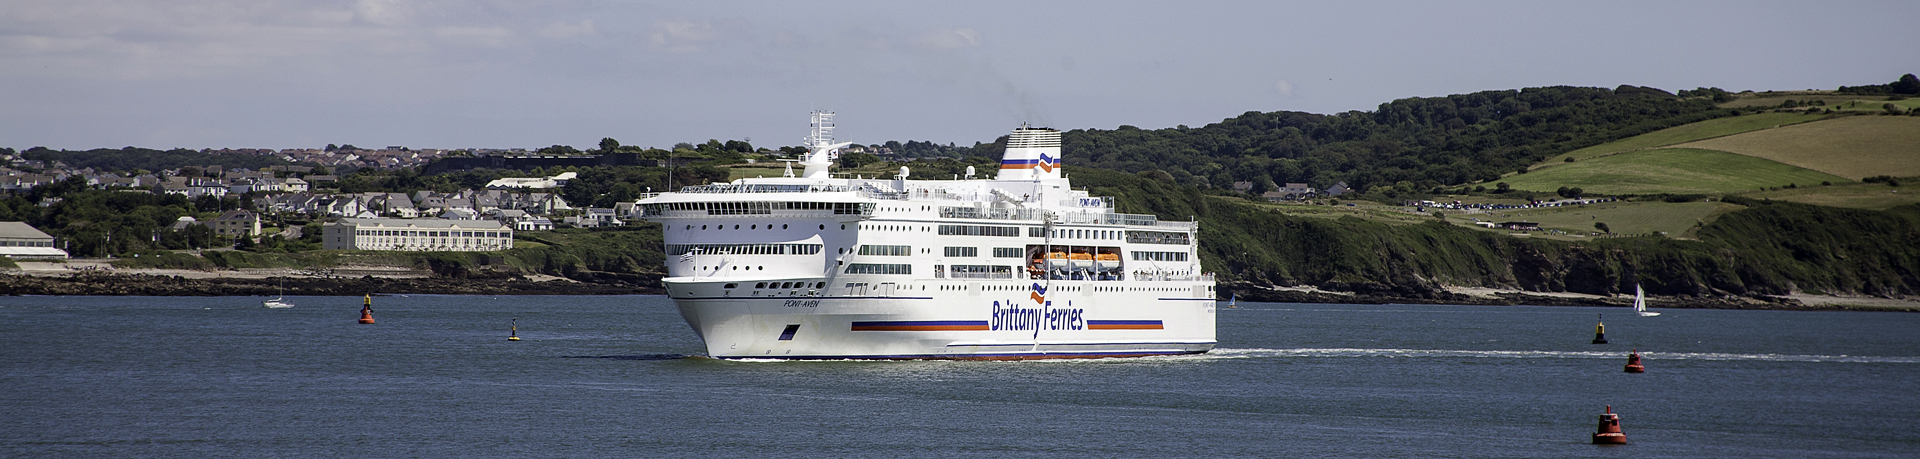 Travel by sea, relax and enjoy your journey with Brittany Ferries